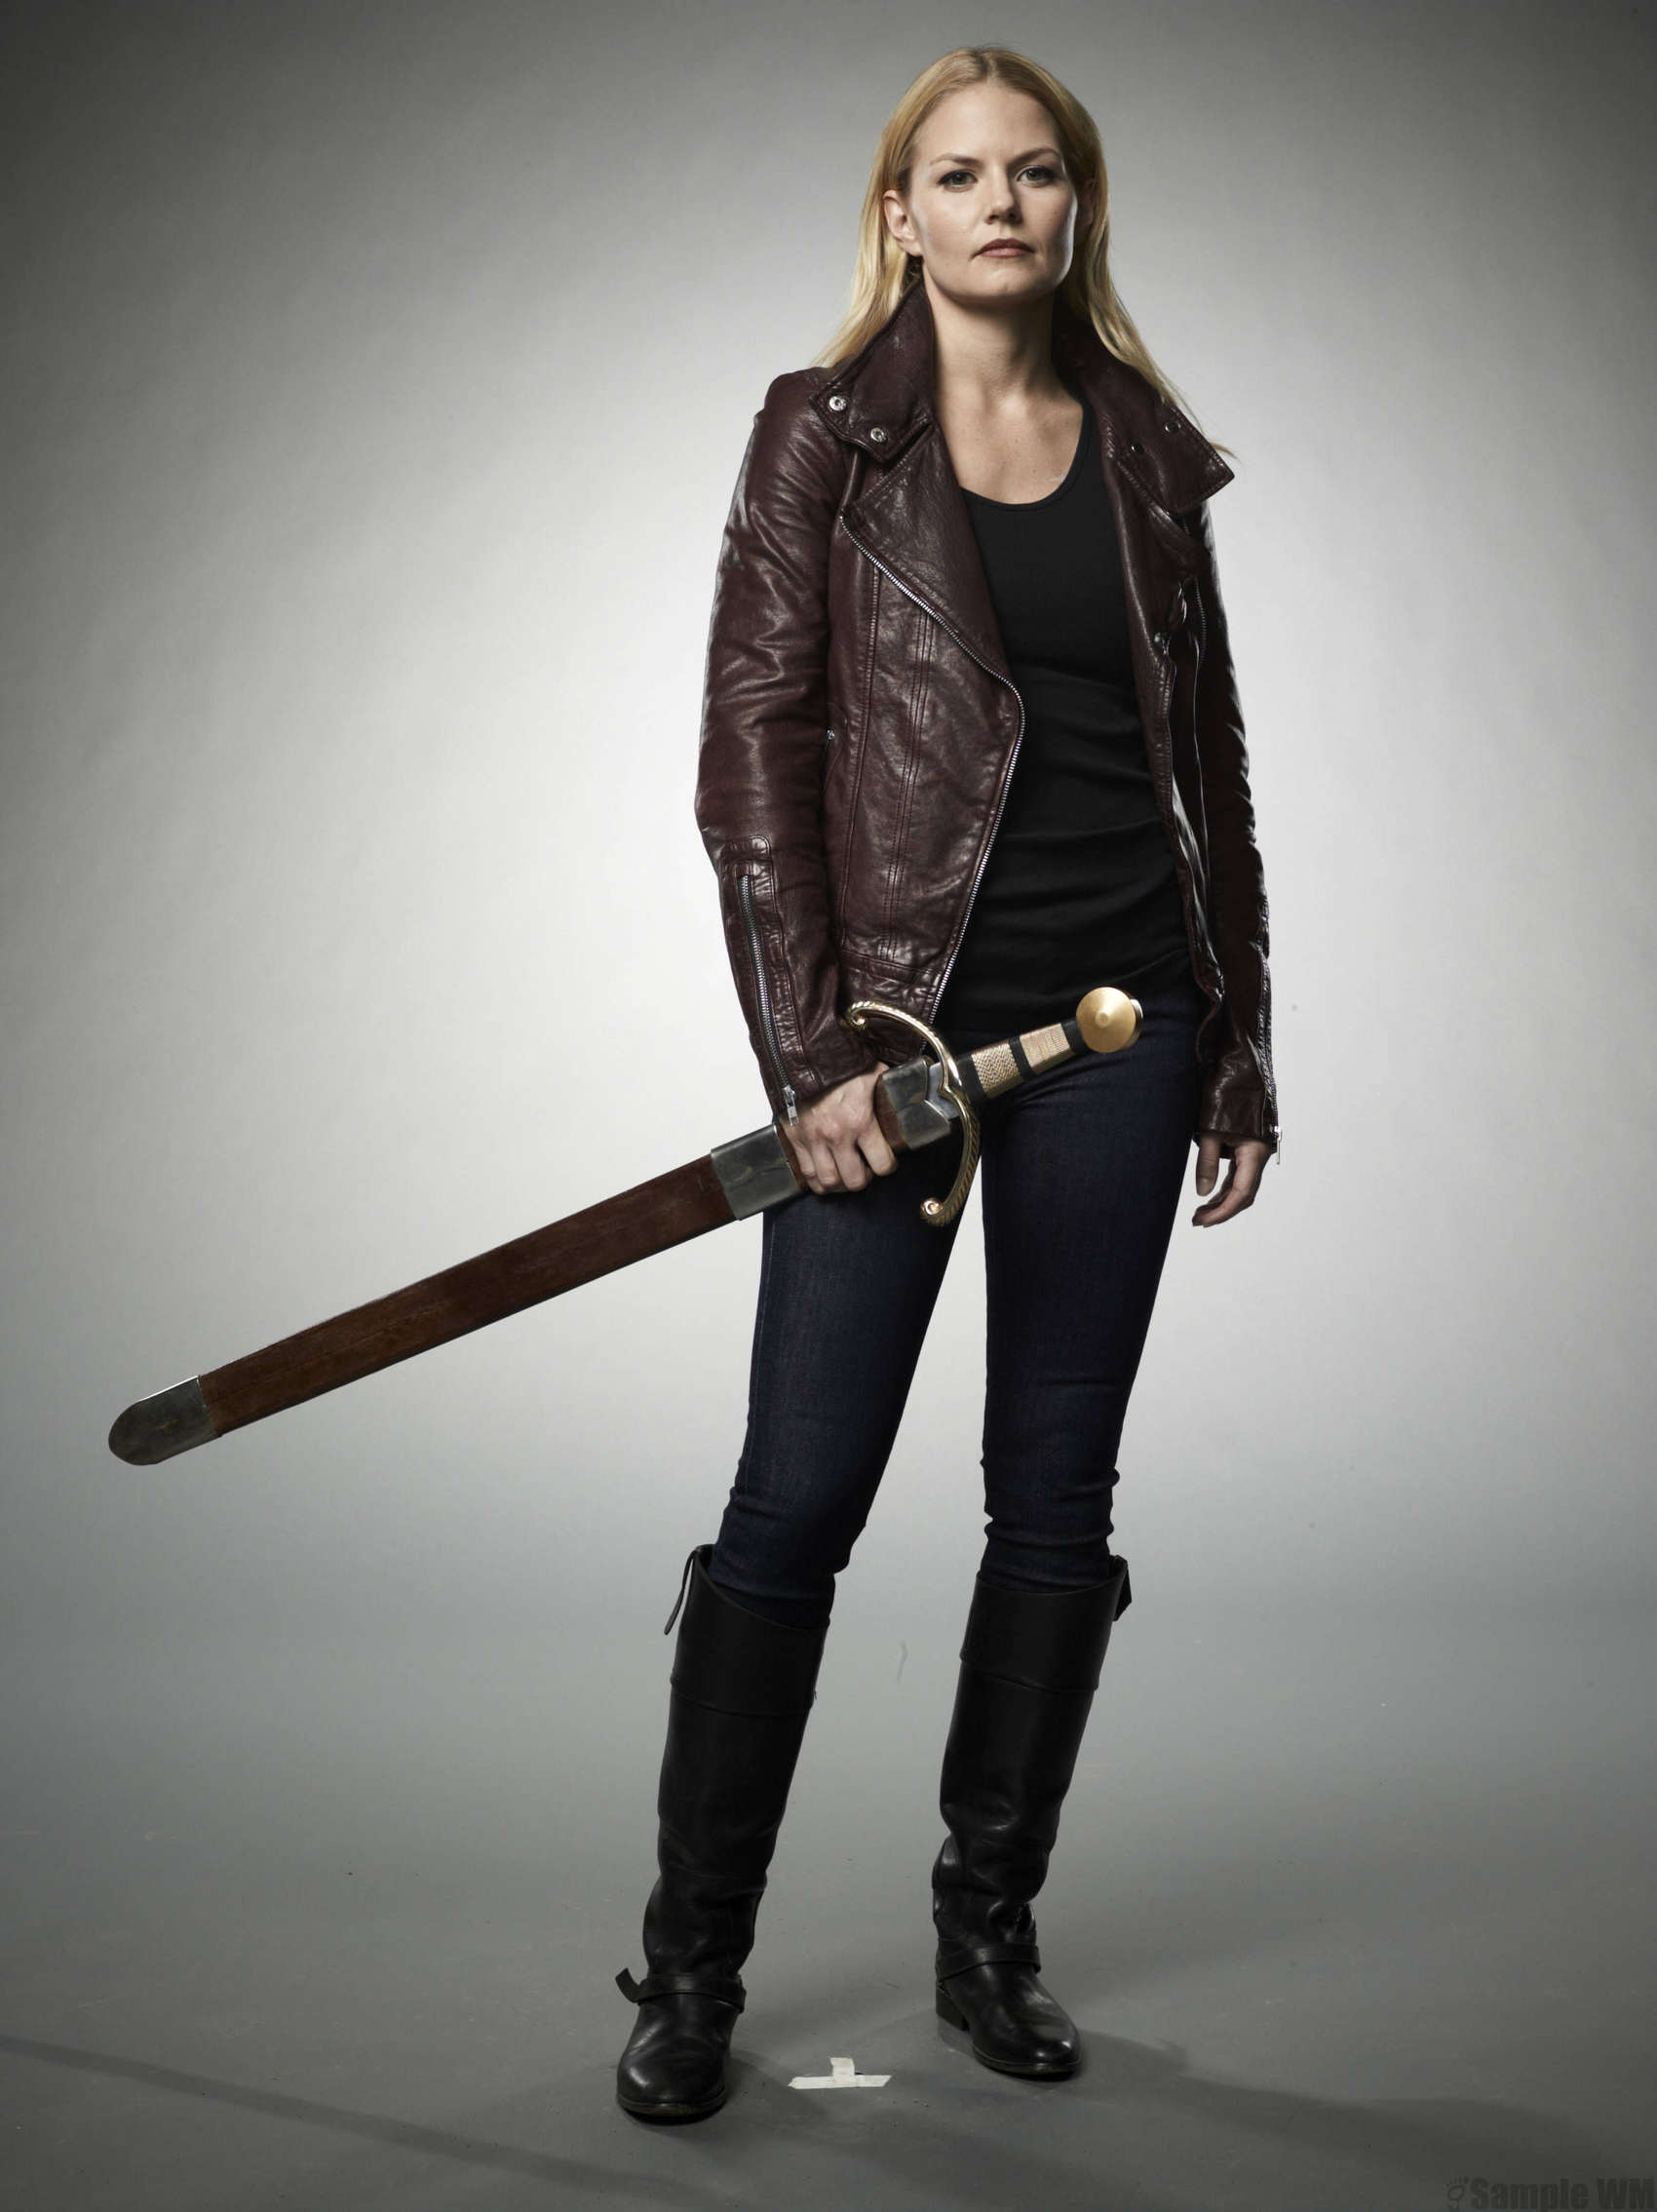 Jennifer Morrison: Once Upon A Time Season 2 Poster and ...